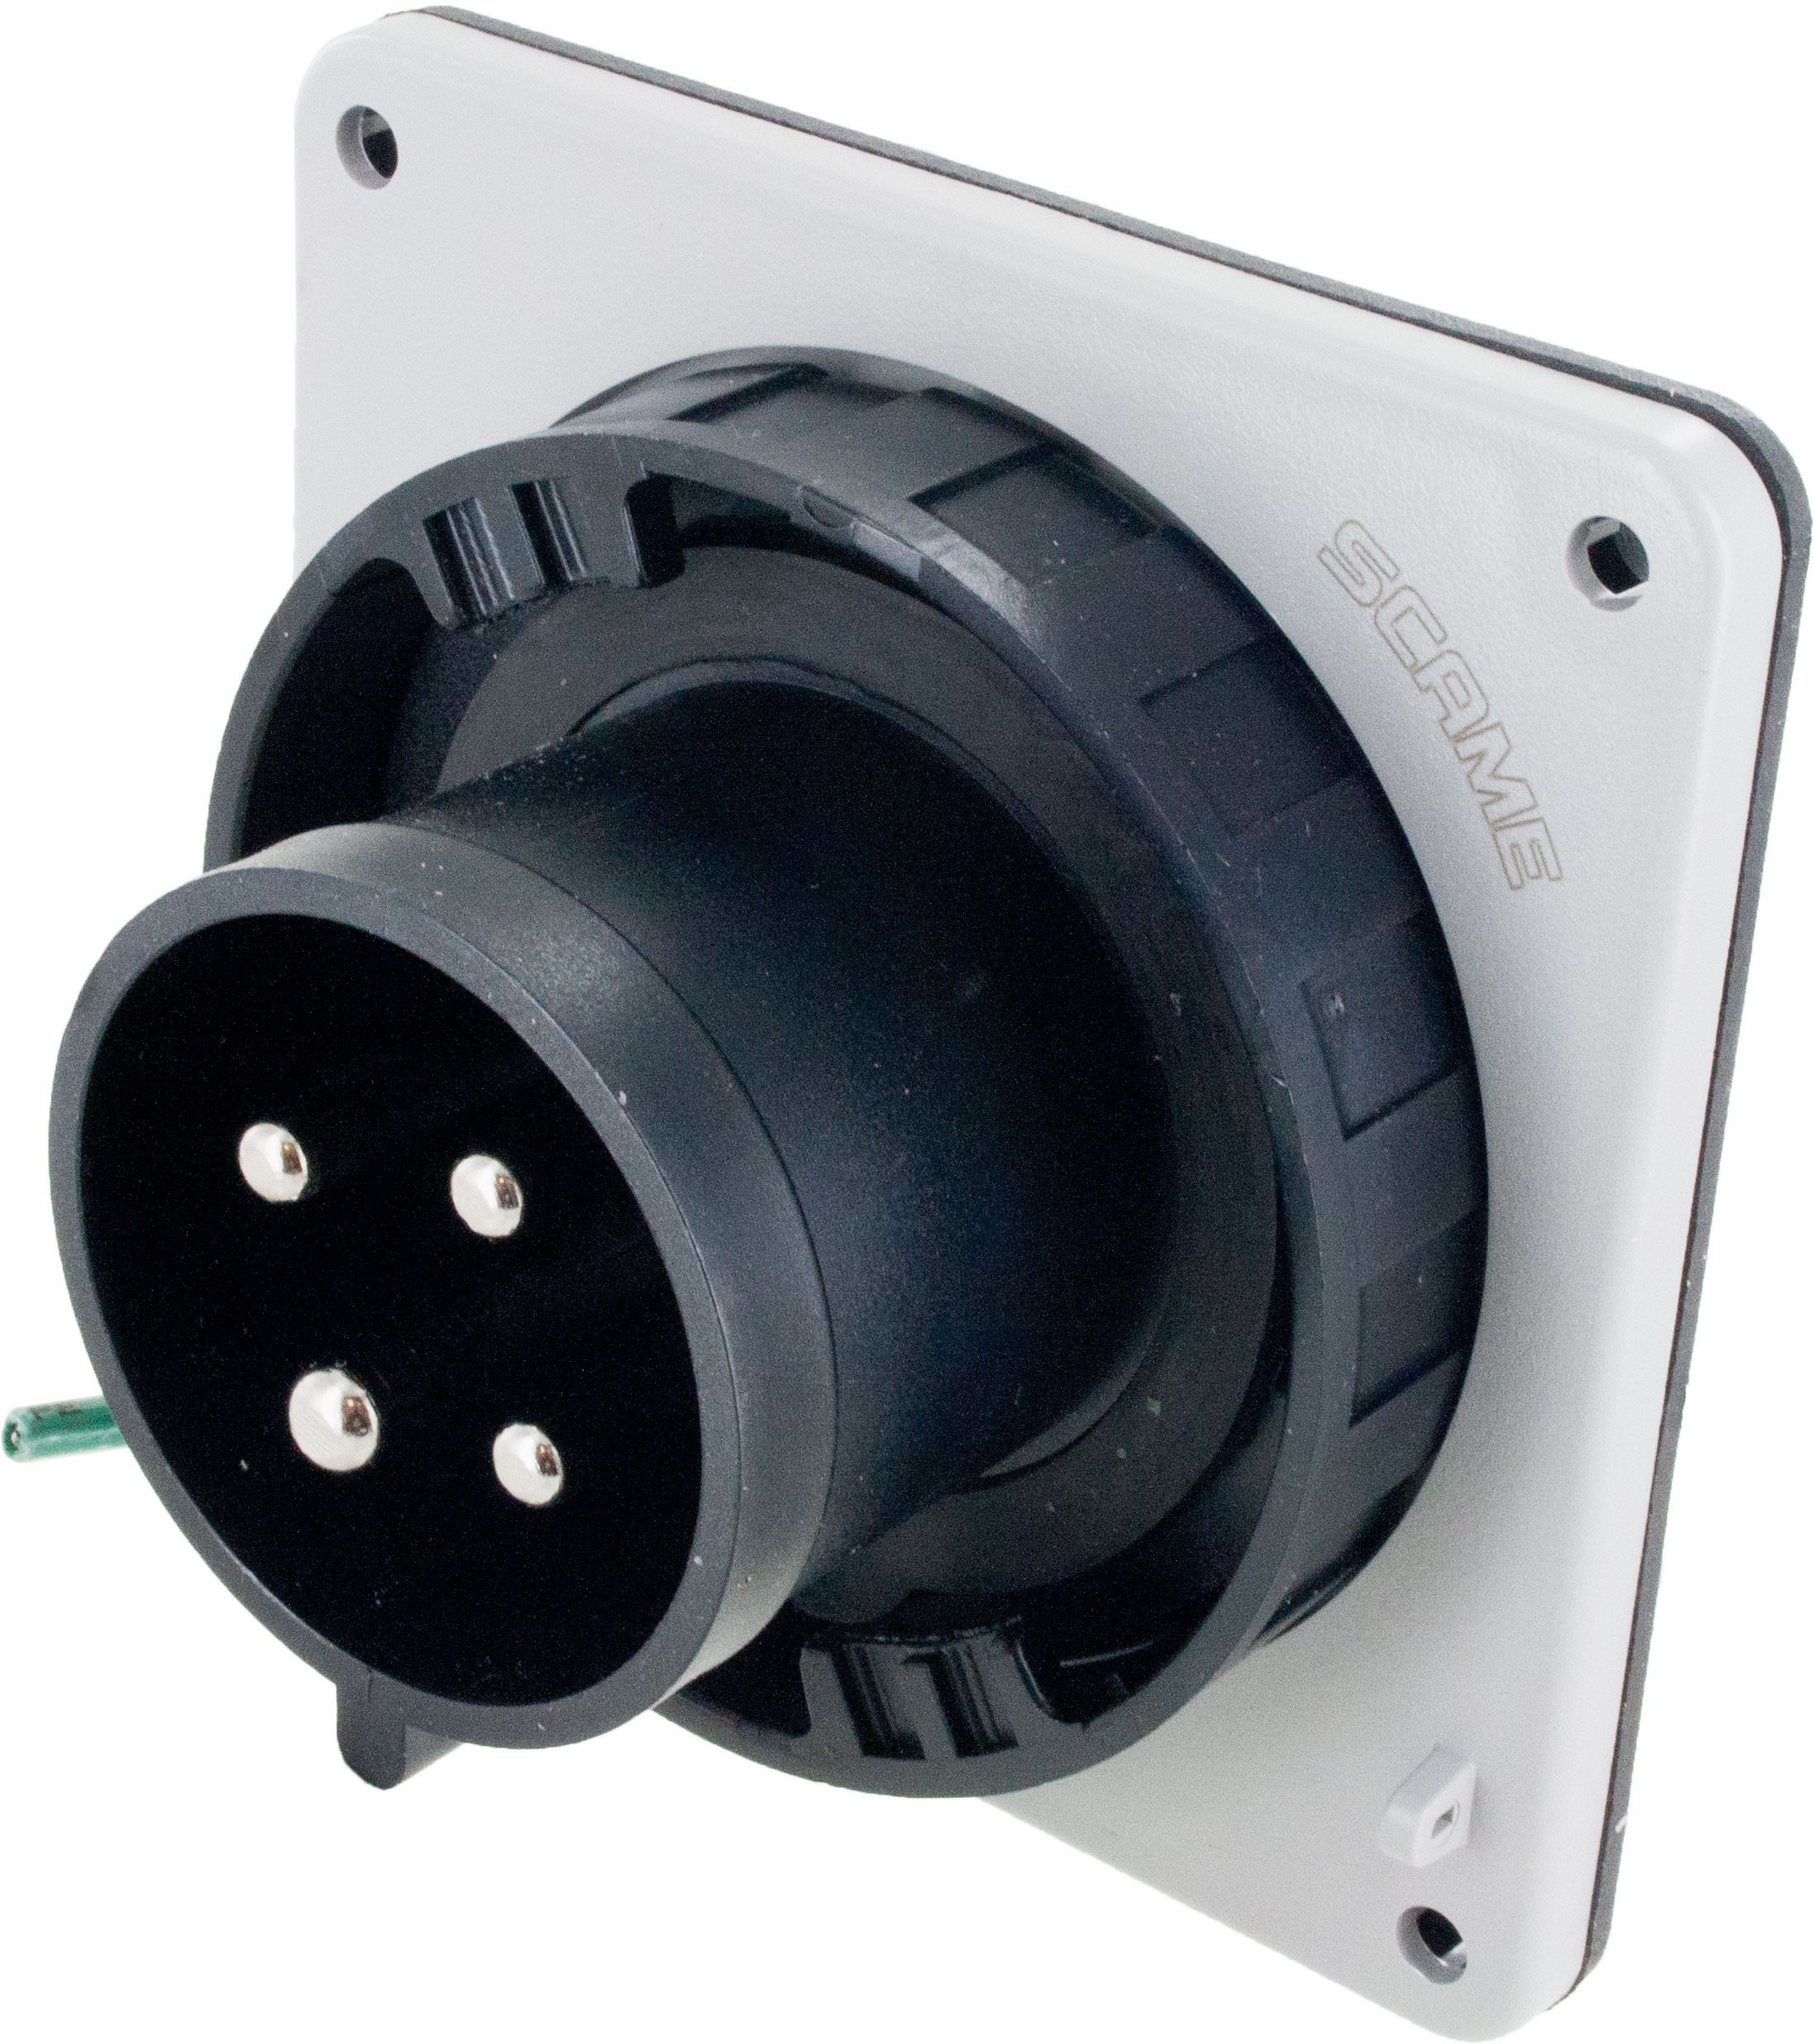 430B5W Pin And Sleeve Inlet 30 Amp 3 Pole 4 Wire